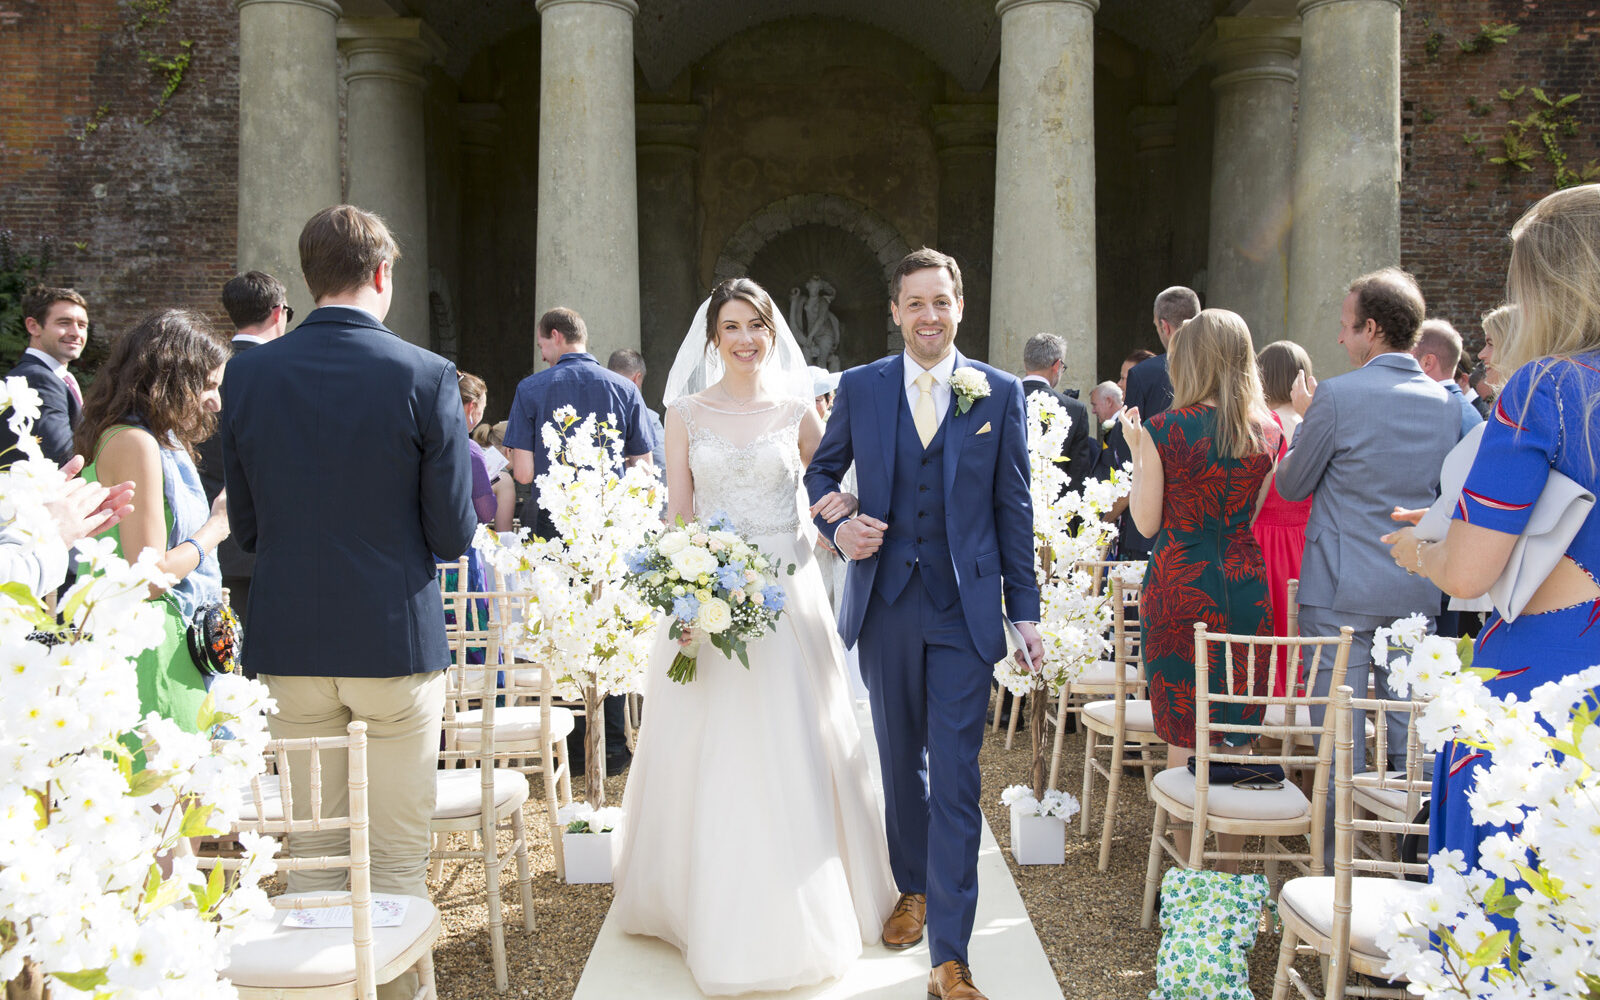 bride and groom walking up the aisle after their outside wedding ceremony at Wotton House in Dorking, Surrey